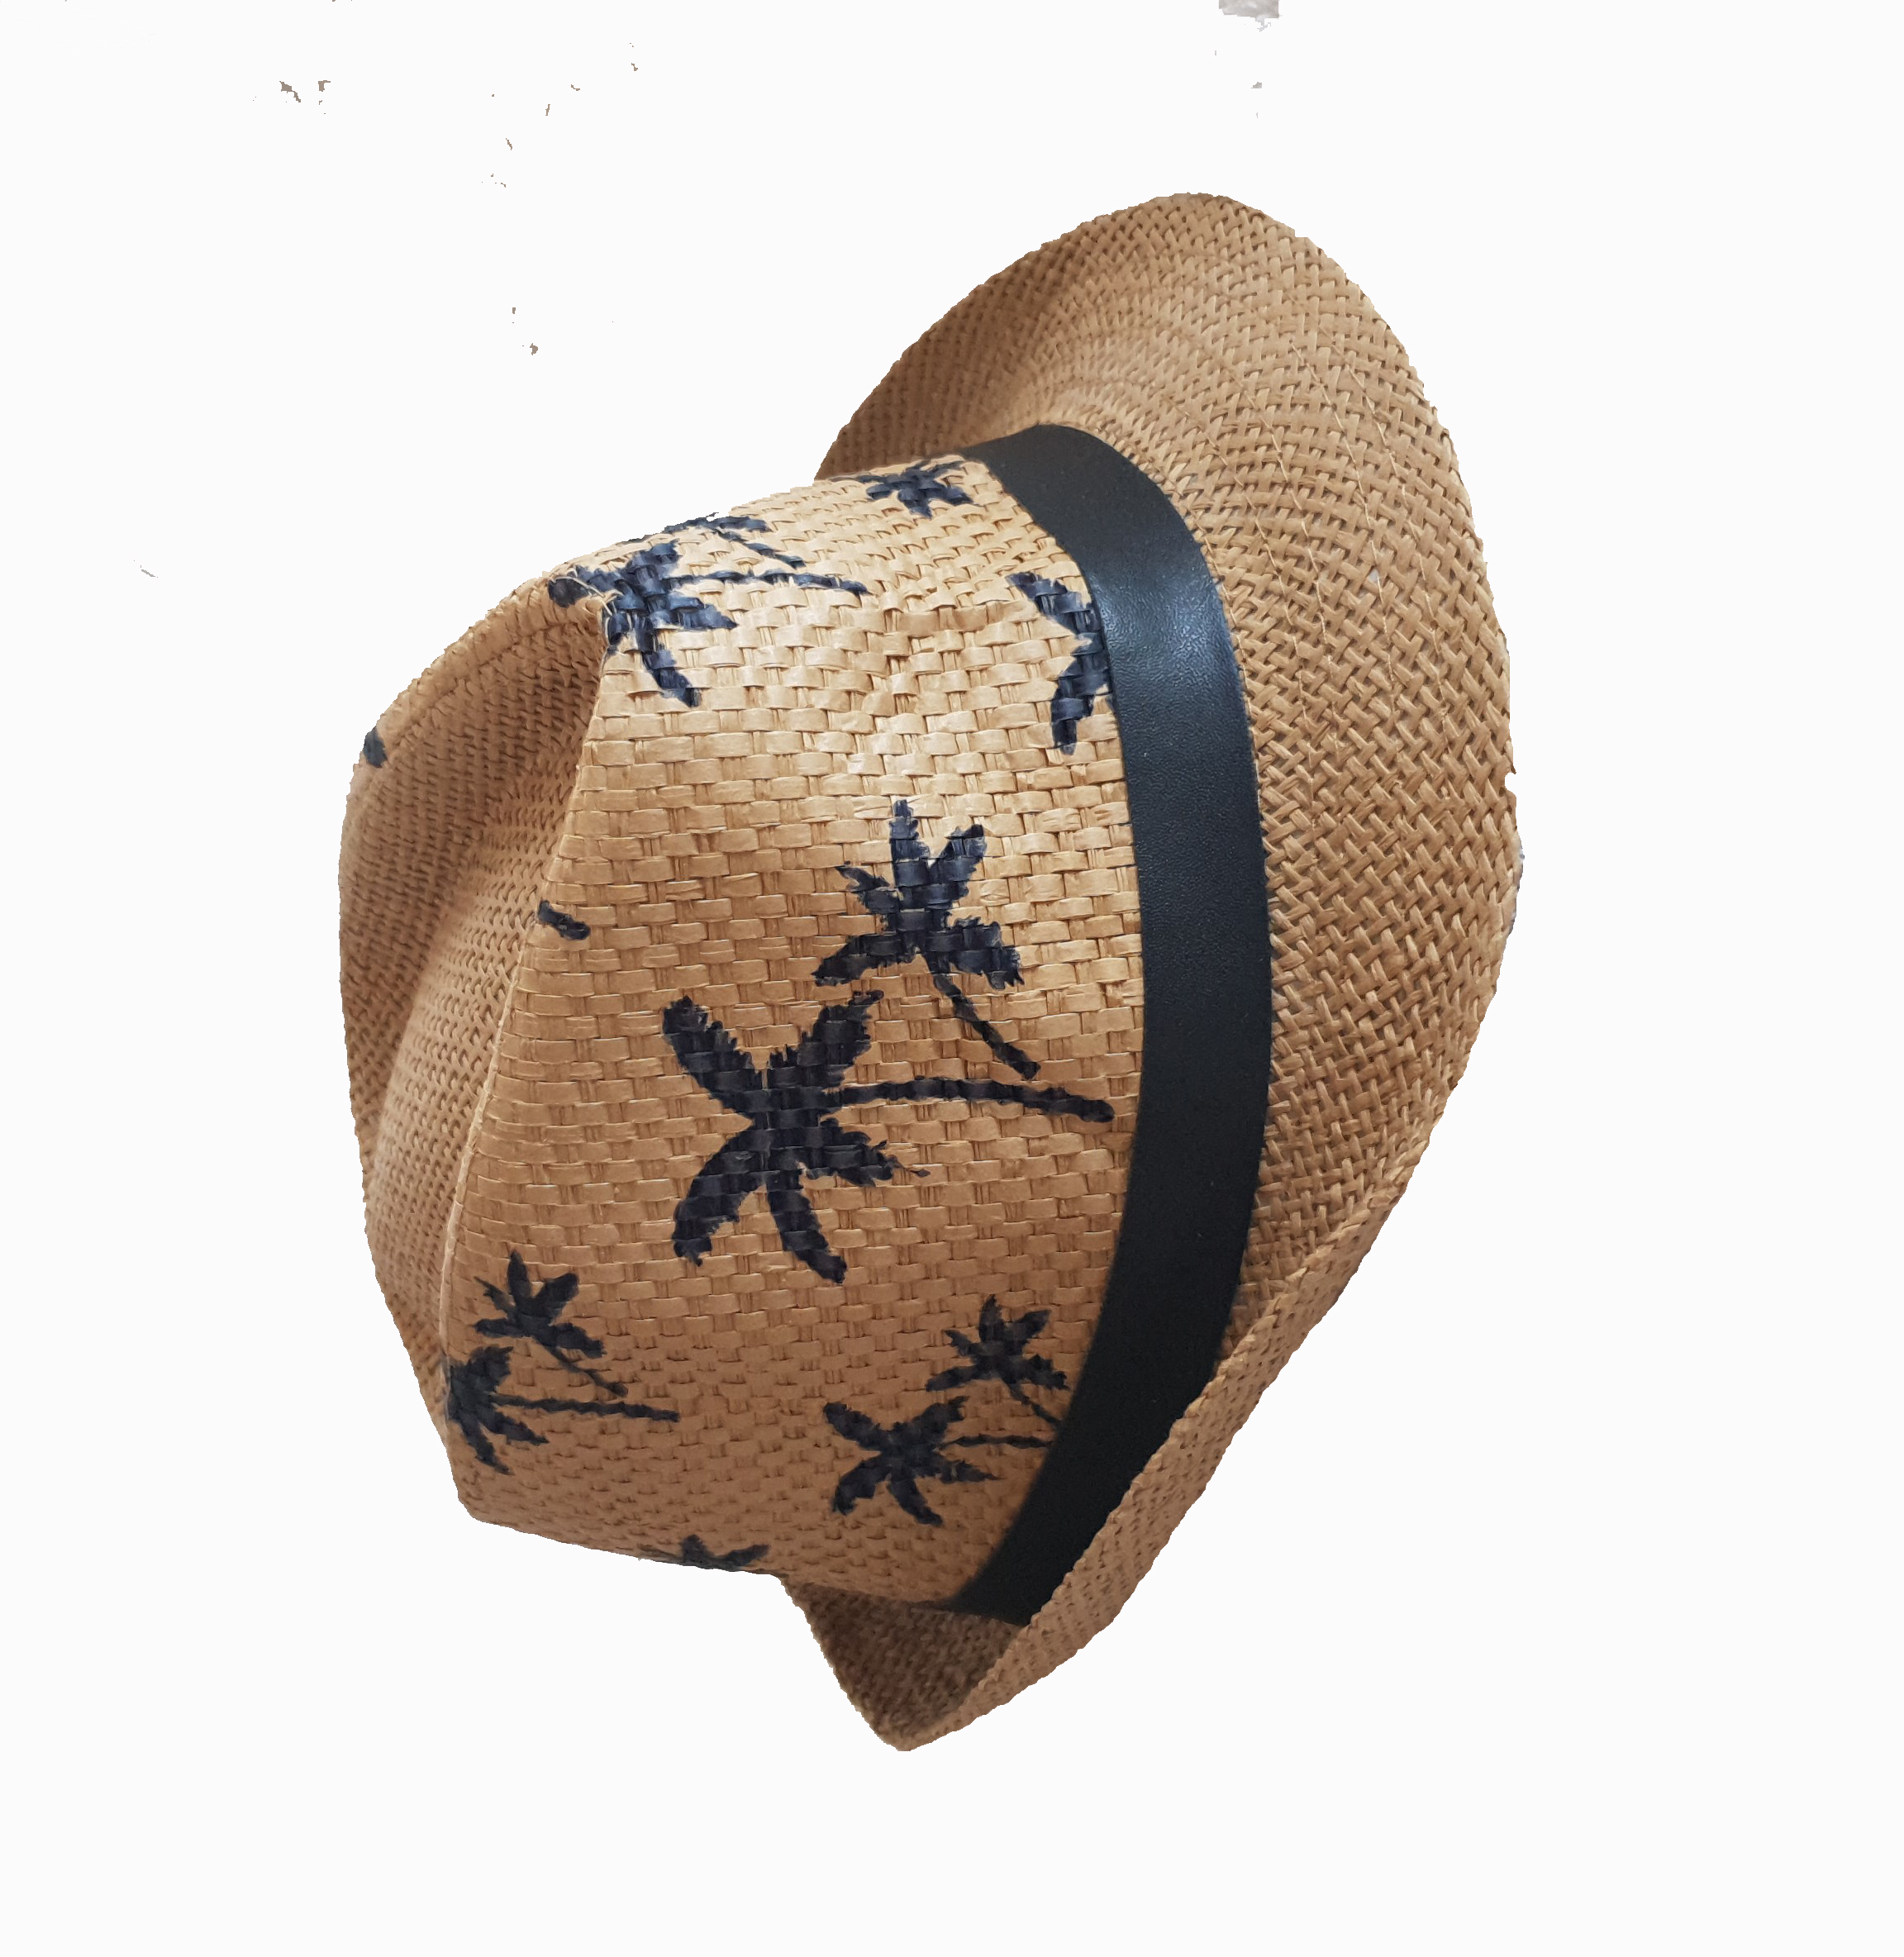 KD2005 - Coffee fedora with palm trees